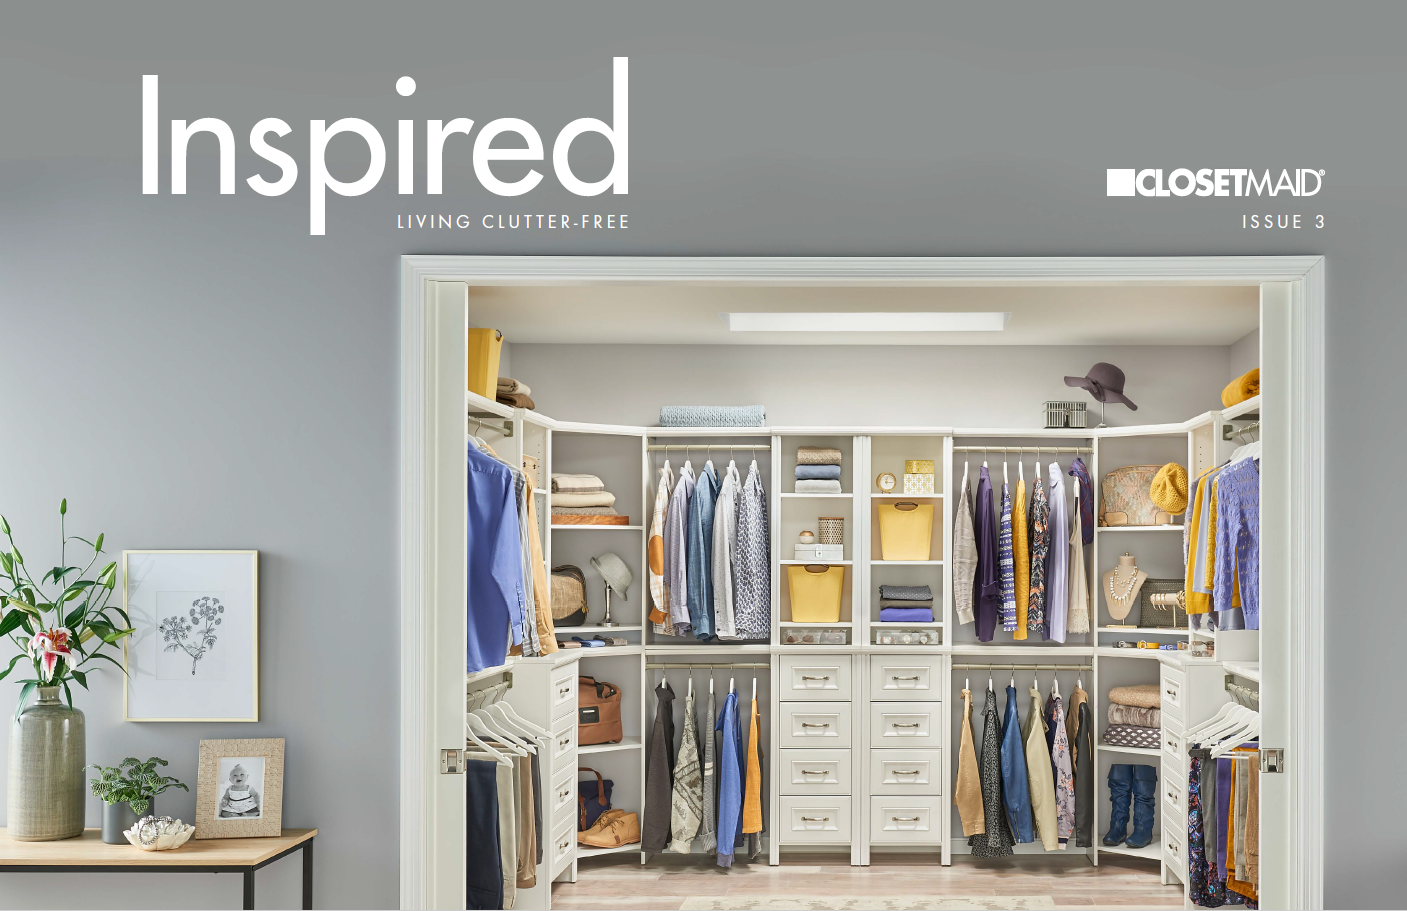 Get Inspired! Your ClosetMaid Guide to Living Clutter-Free